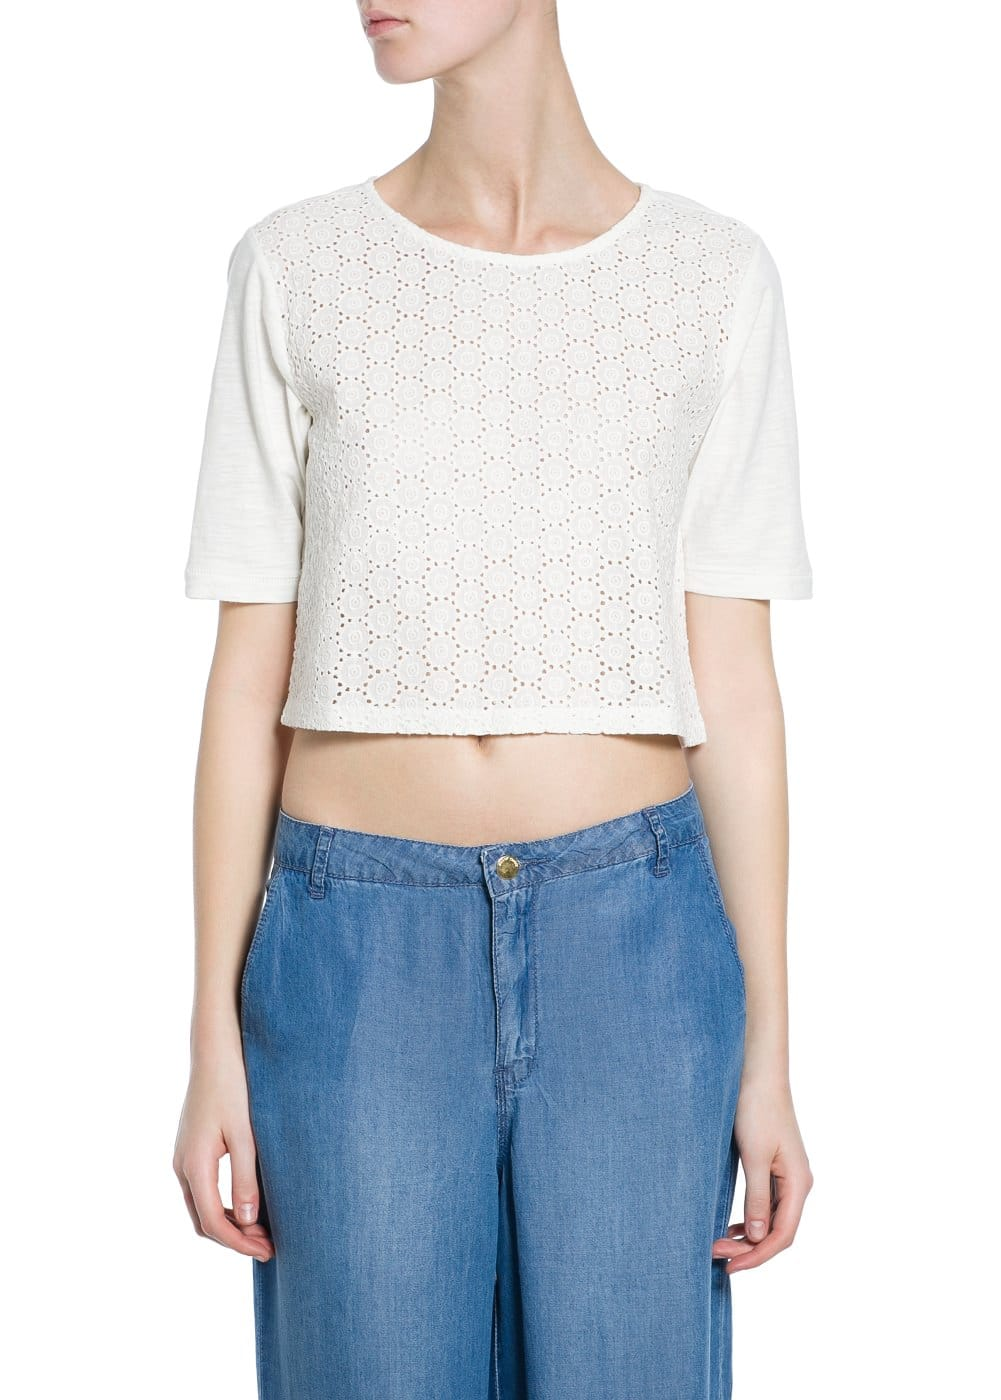 Camiseta cropped bordada | VIOLETA BY MANGO